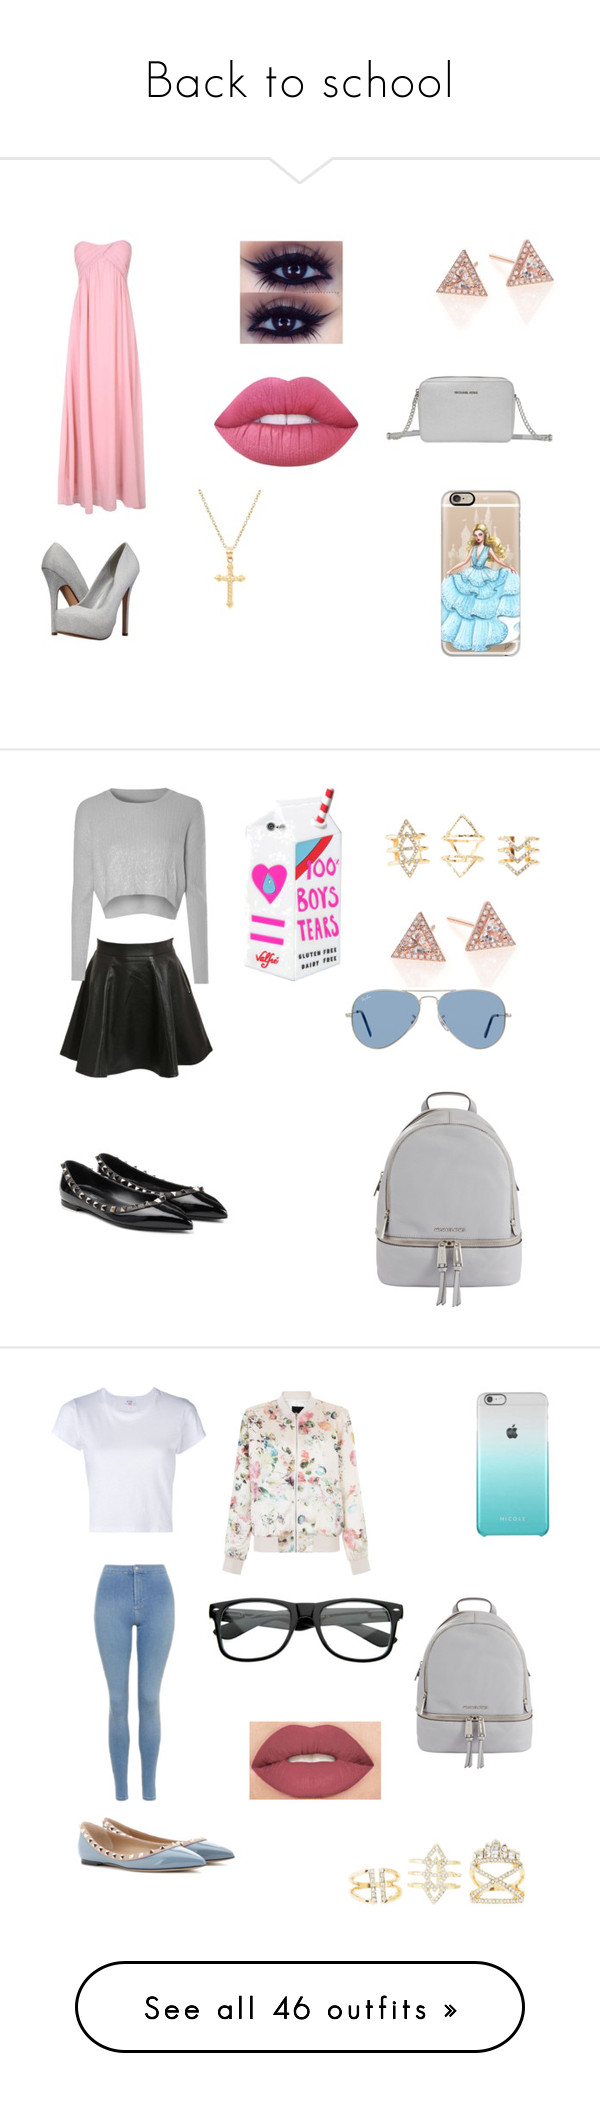 """""""Back to school"""" by junebug02 on Polyvore featuring Alice & You, EF Collection, Lime Crime, Call it SPRING, MICHAEL Michael Kors, Casetify, Pori, Pilot, Glamorous and Valentino"""